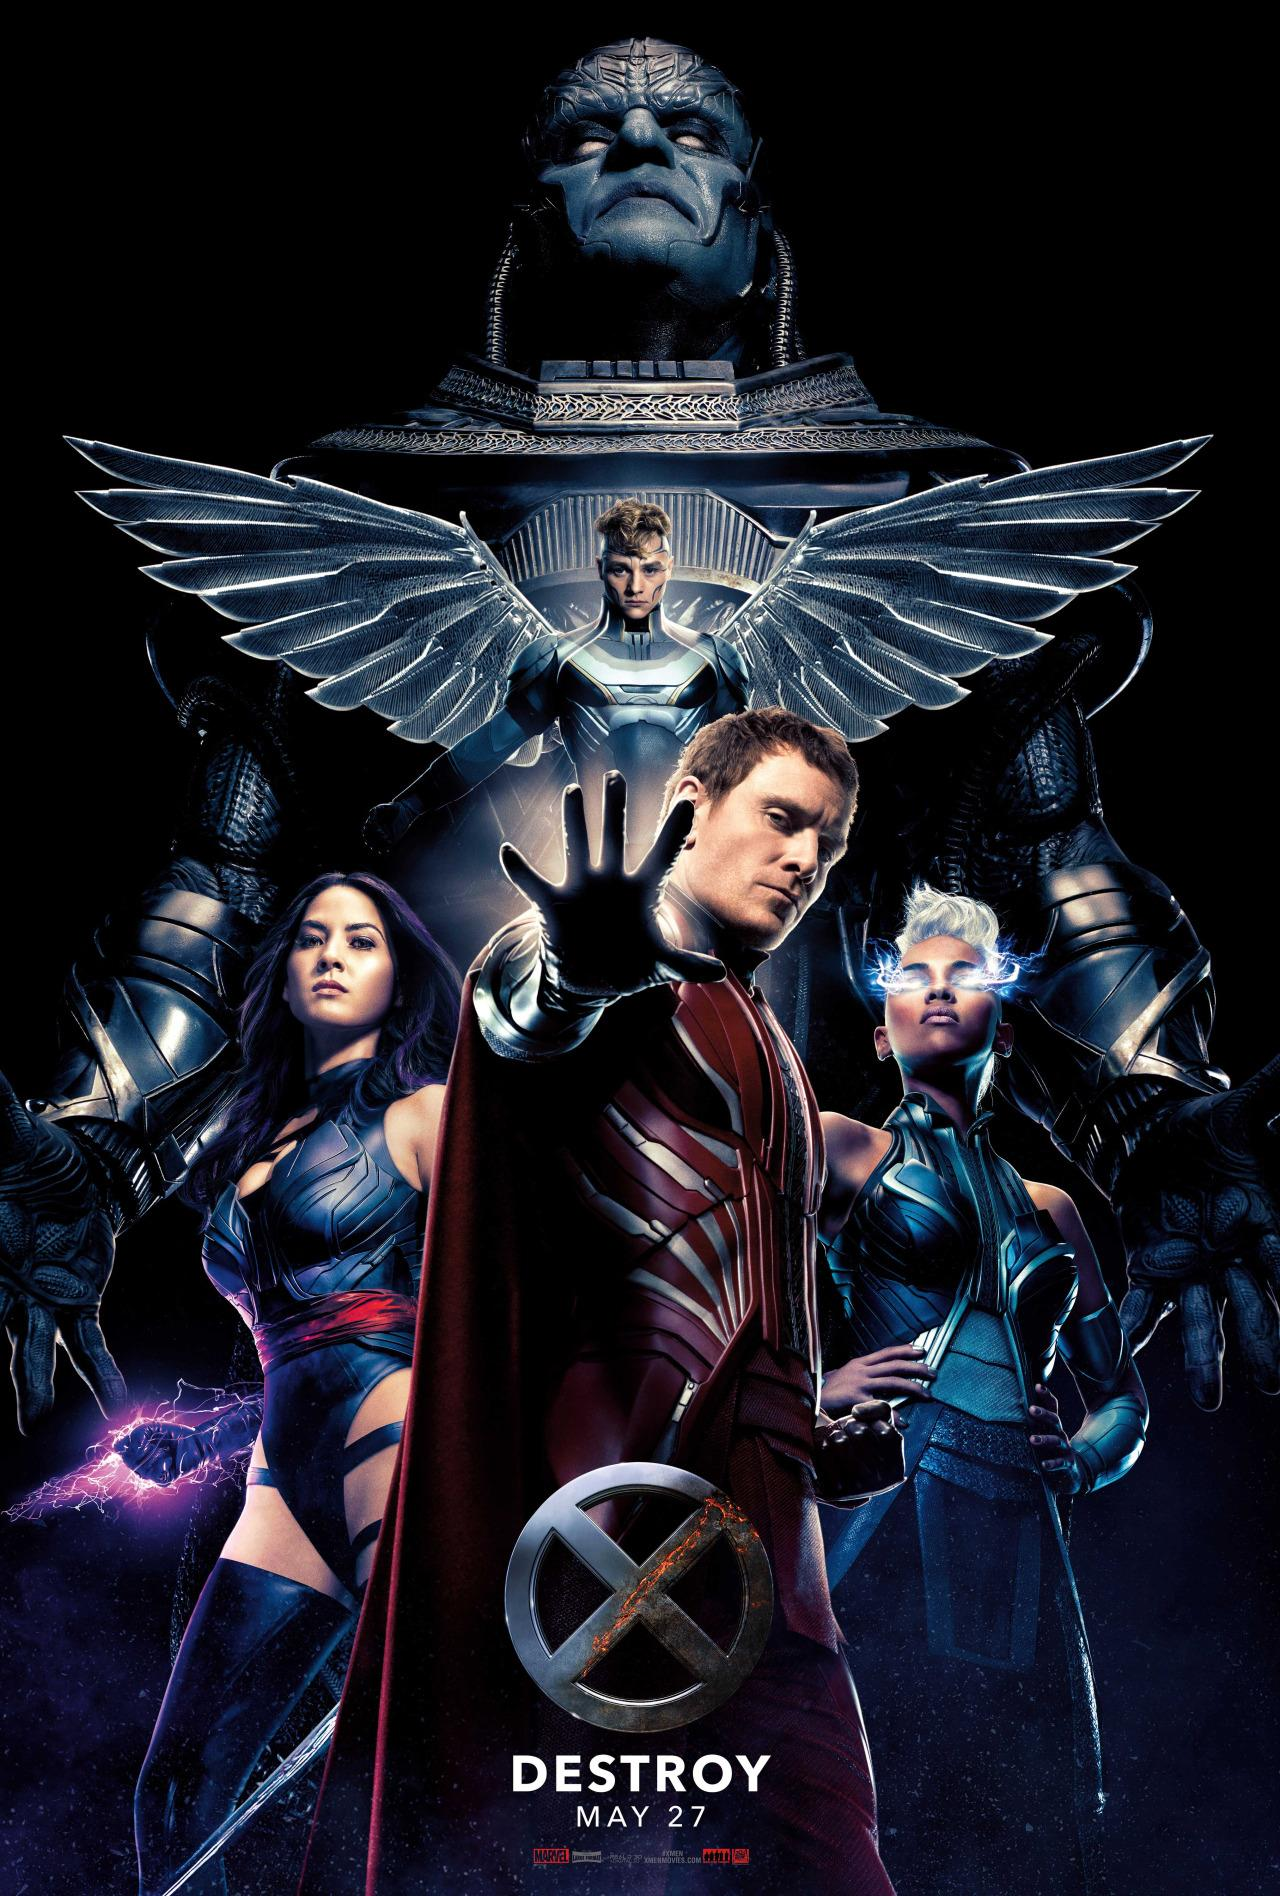 Bryan Singer Productions >> 'X-Men Apocalypse' fall short of previous films, but sets up new cast, adventure | The Global ...